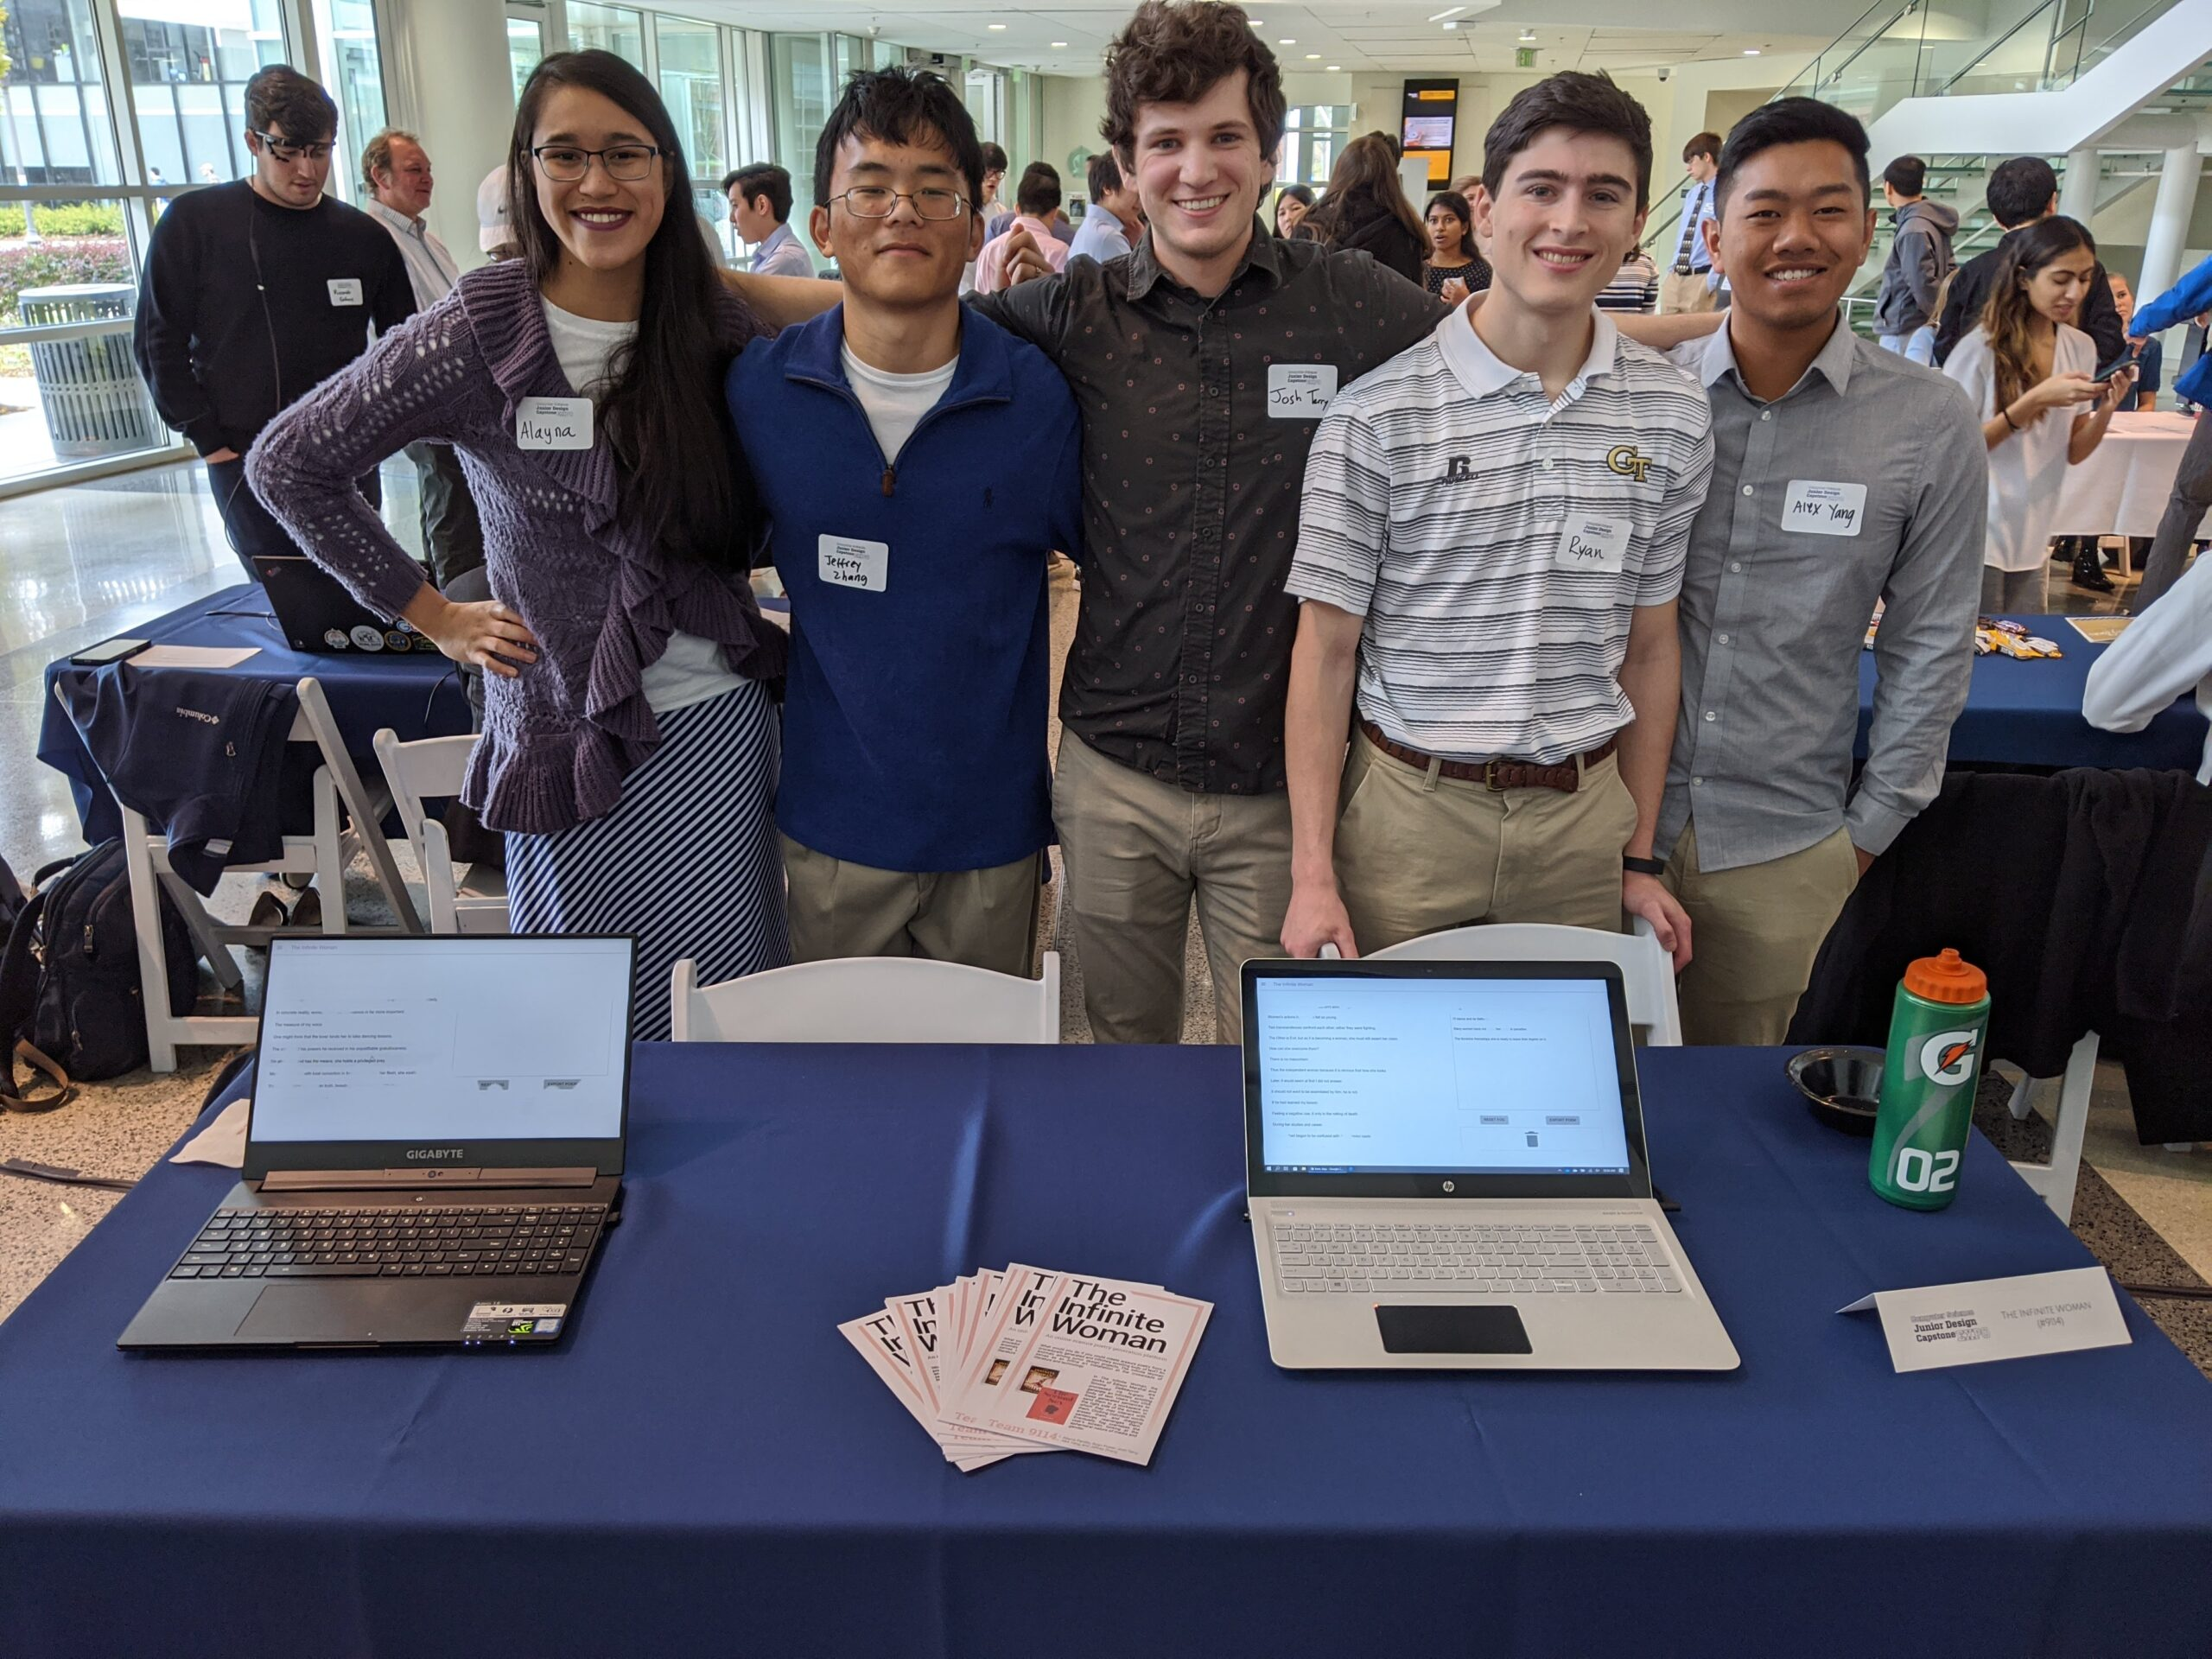 "The team (L-R: Alayna Panlilio, Jeffrey Zhang, Josh Terry, Ryan Power, Alex Yang) presents their project at Georgia Tech's <a href=""https://sites.gatech.edu/csjuniordesigncapstone/expo/"" target=""_blank"" rel=""noopener noreferrer"">Junior Design Capstone Expo</a> in December 2019. They stand smiling behind a table displaying brochures and the web app on two laptops."